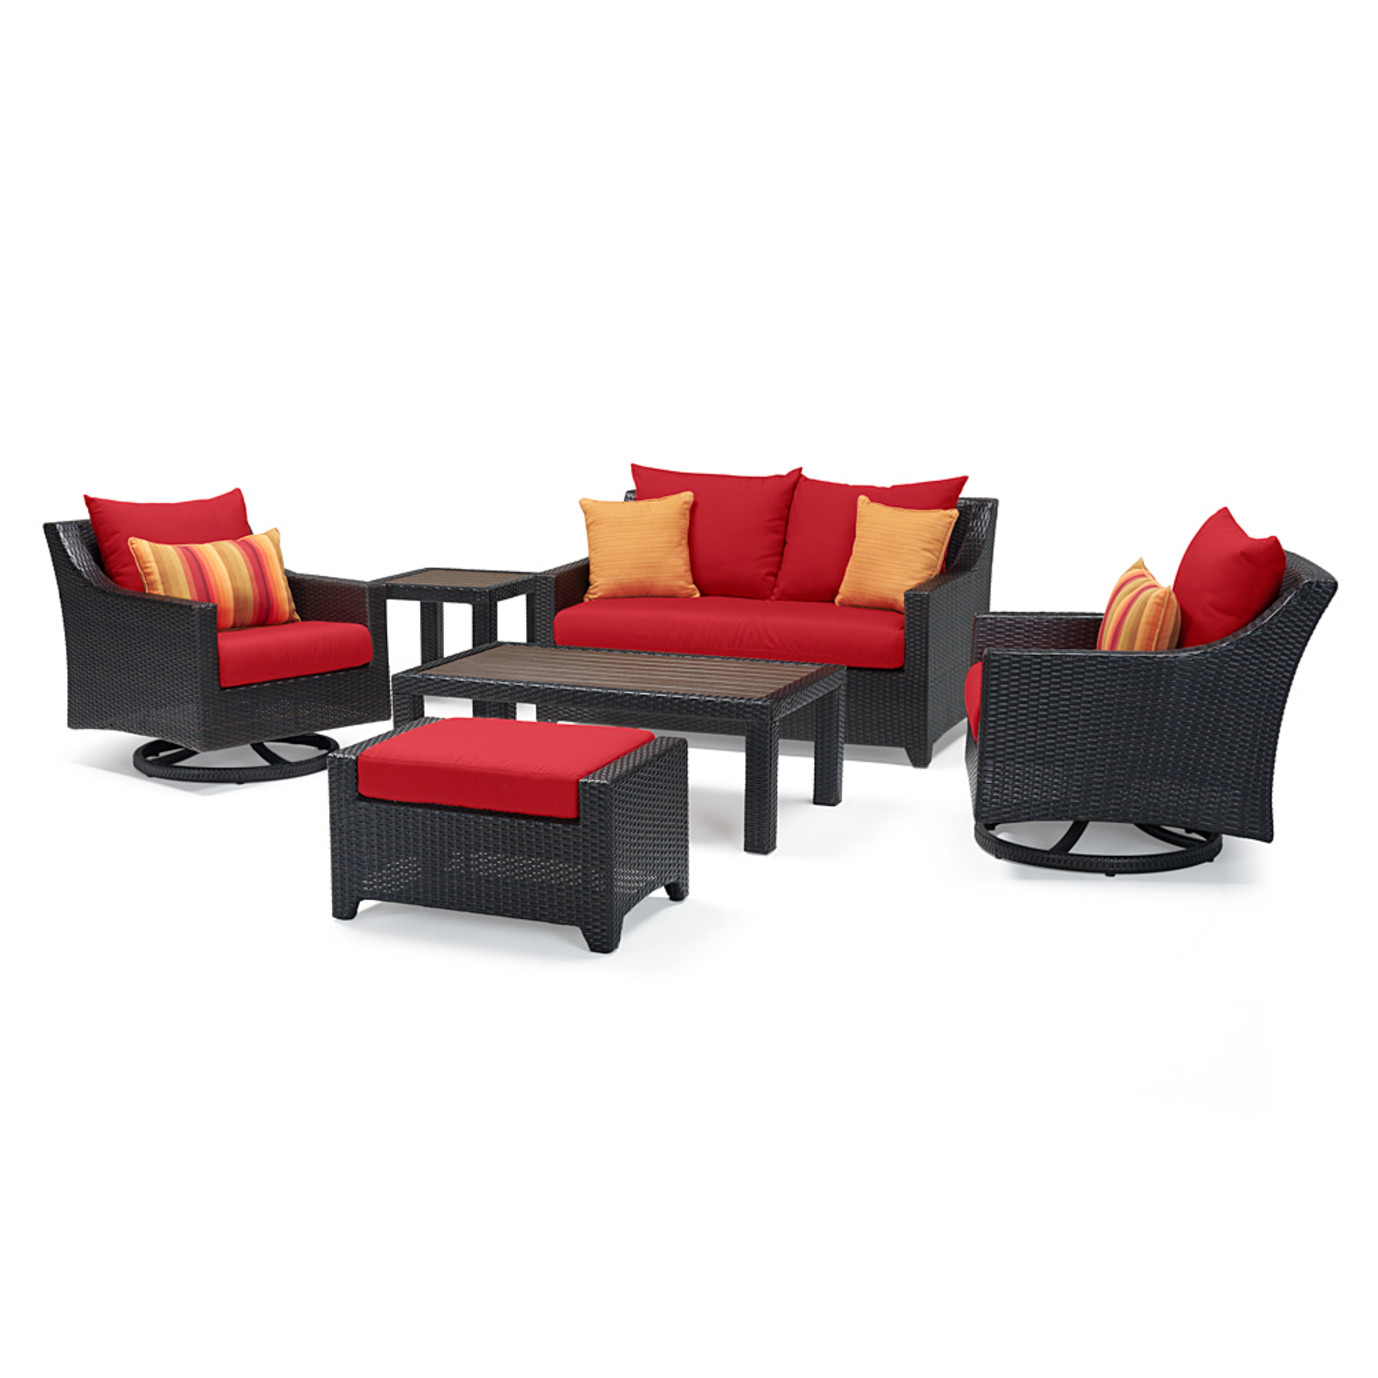 Deco™ Deluxe 6 Piece Love & Motion Club Seating Set - Sunset Red